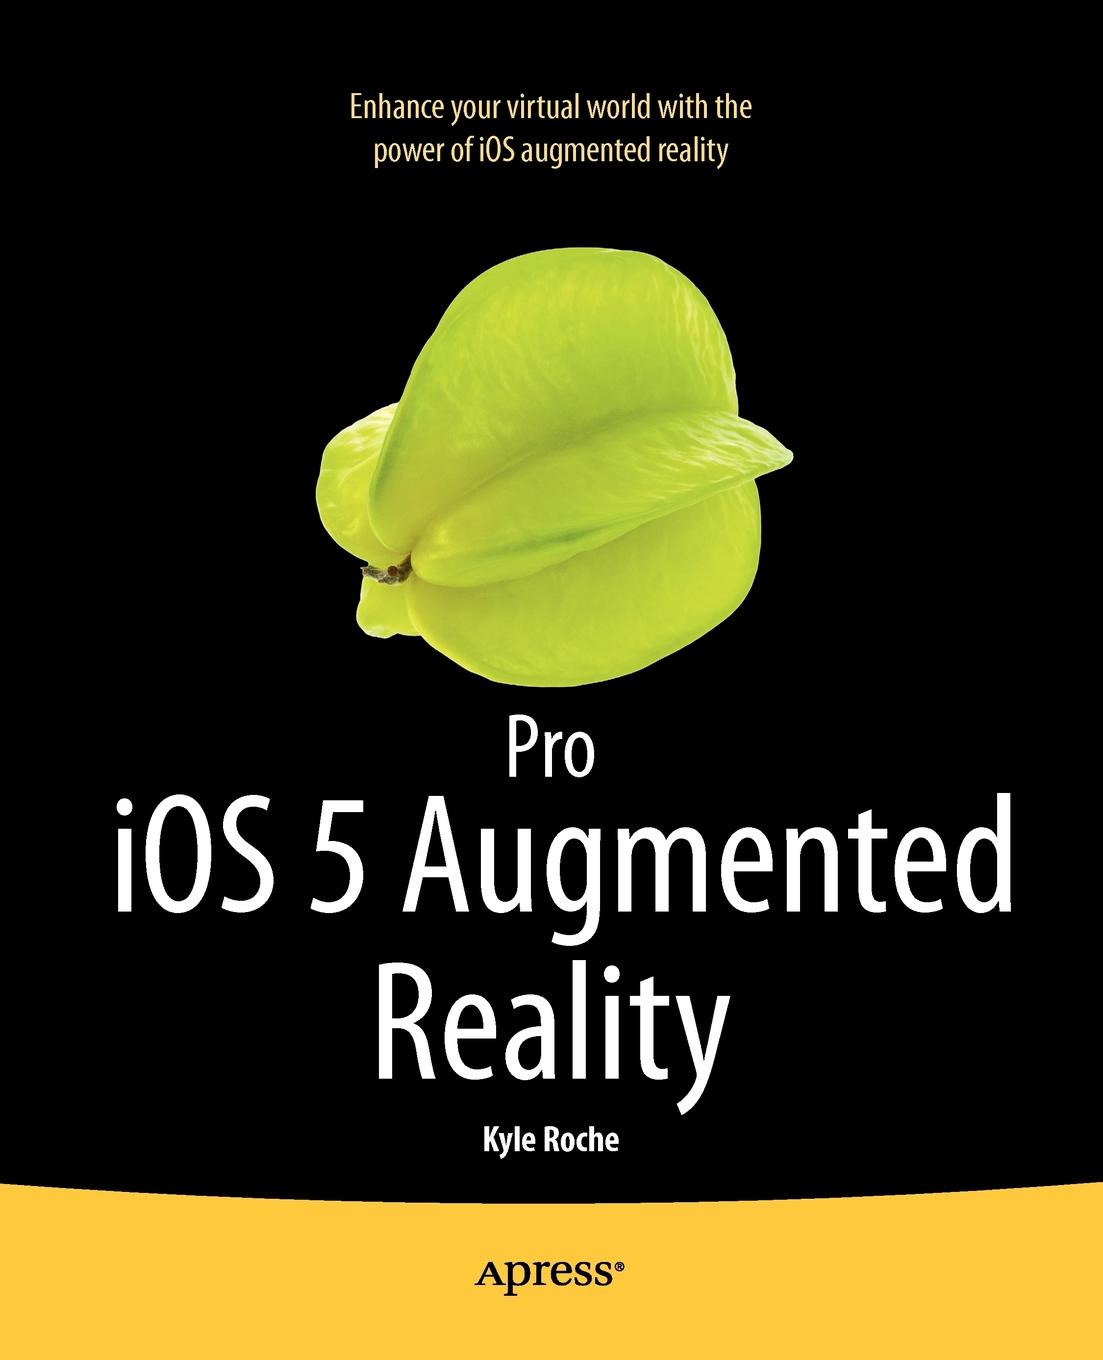 Kyle Roche Pro IOS 5 Augmented Reality computer vision and augmented reality